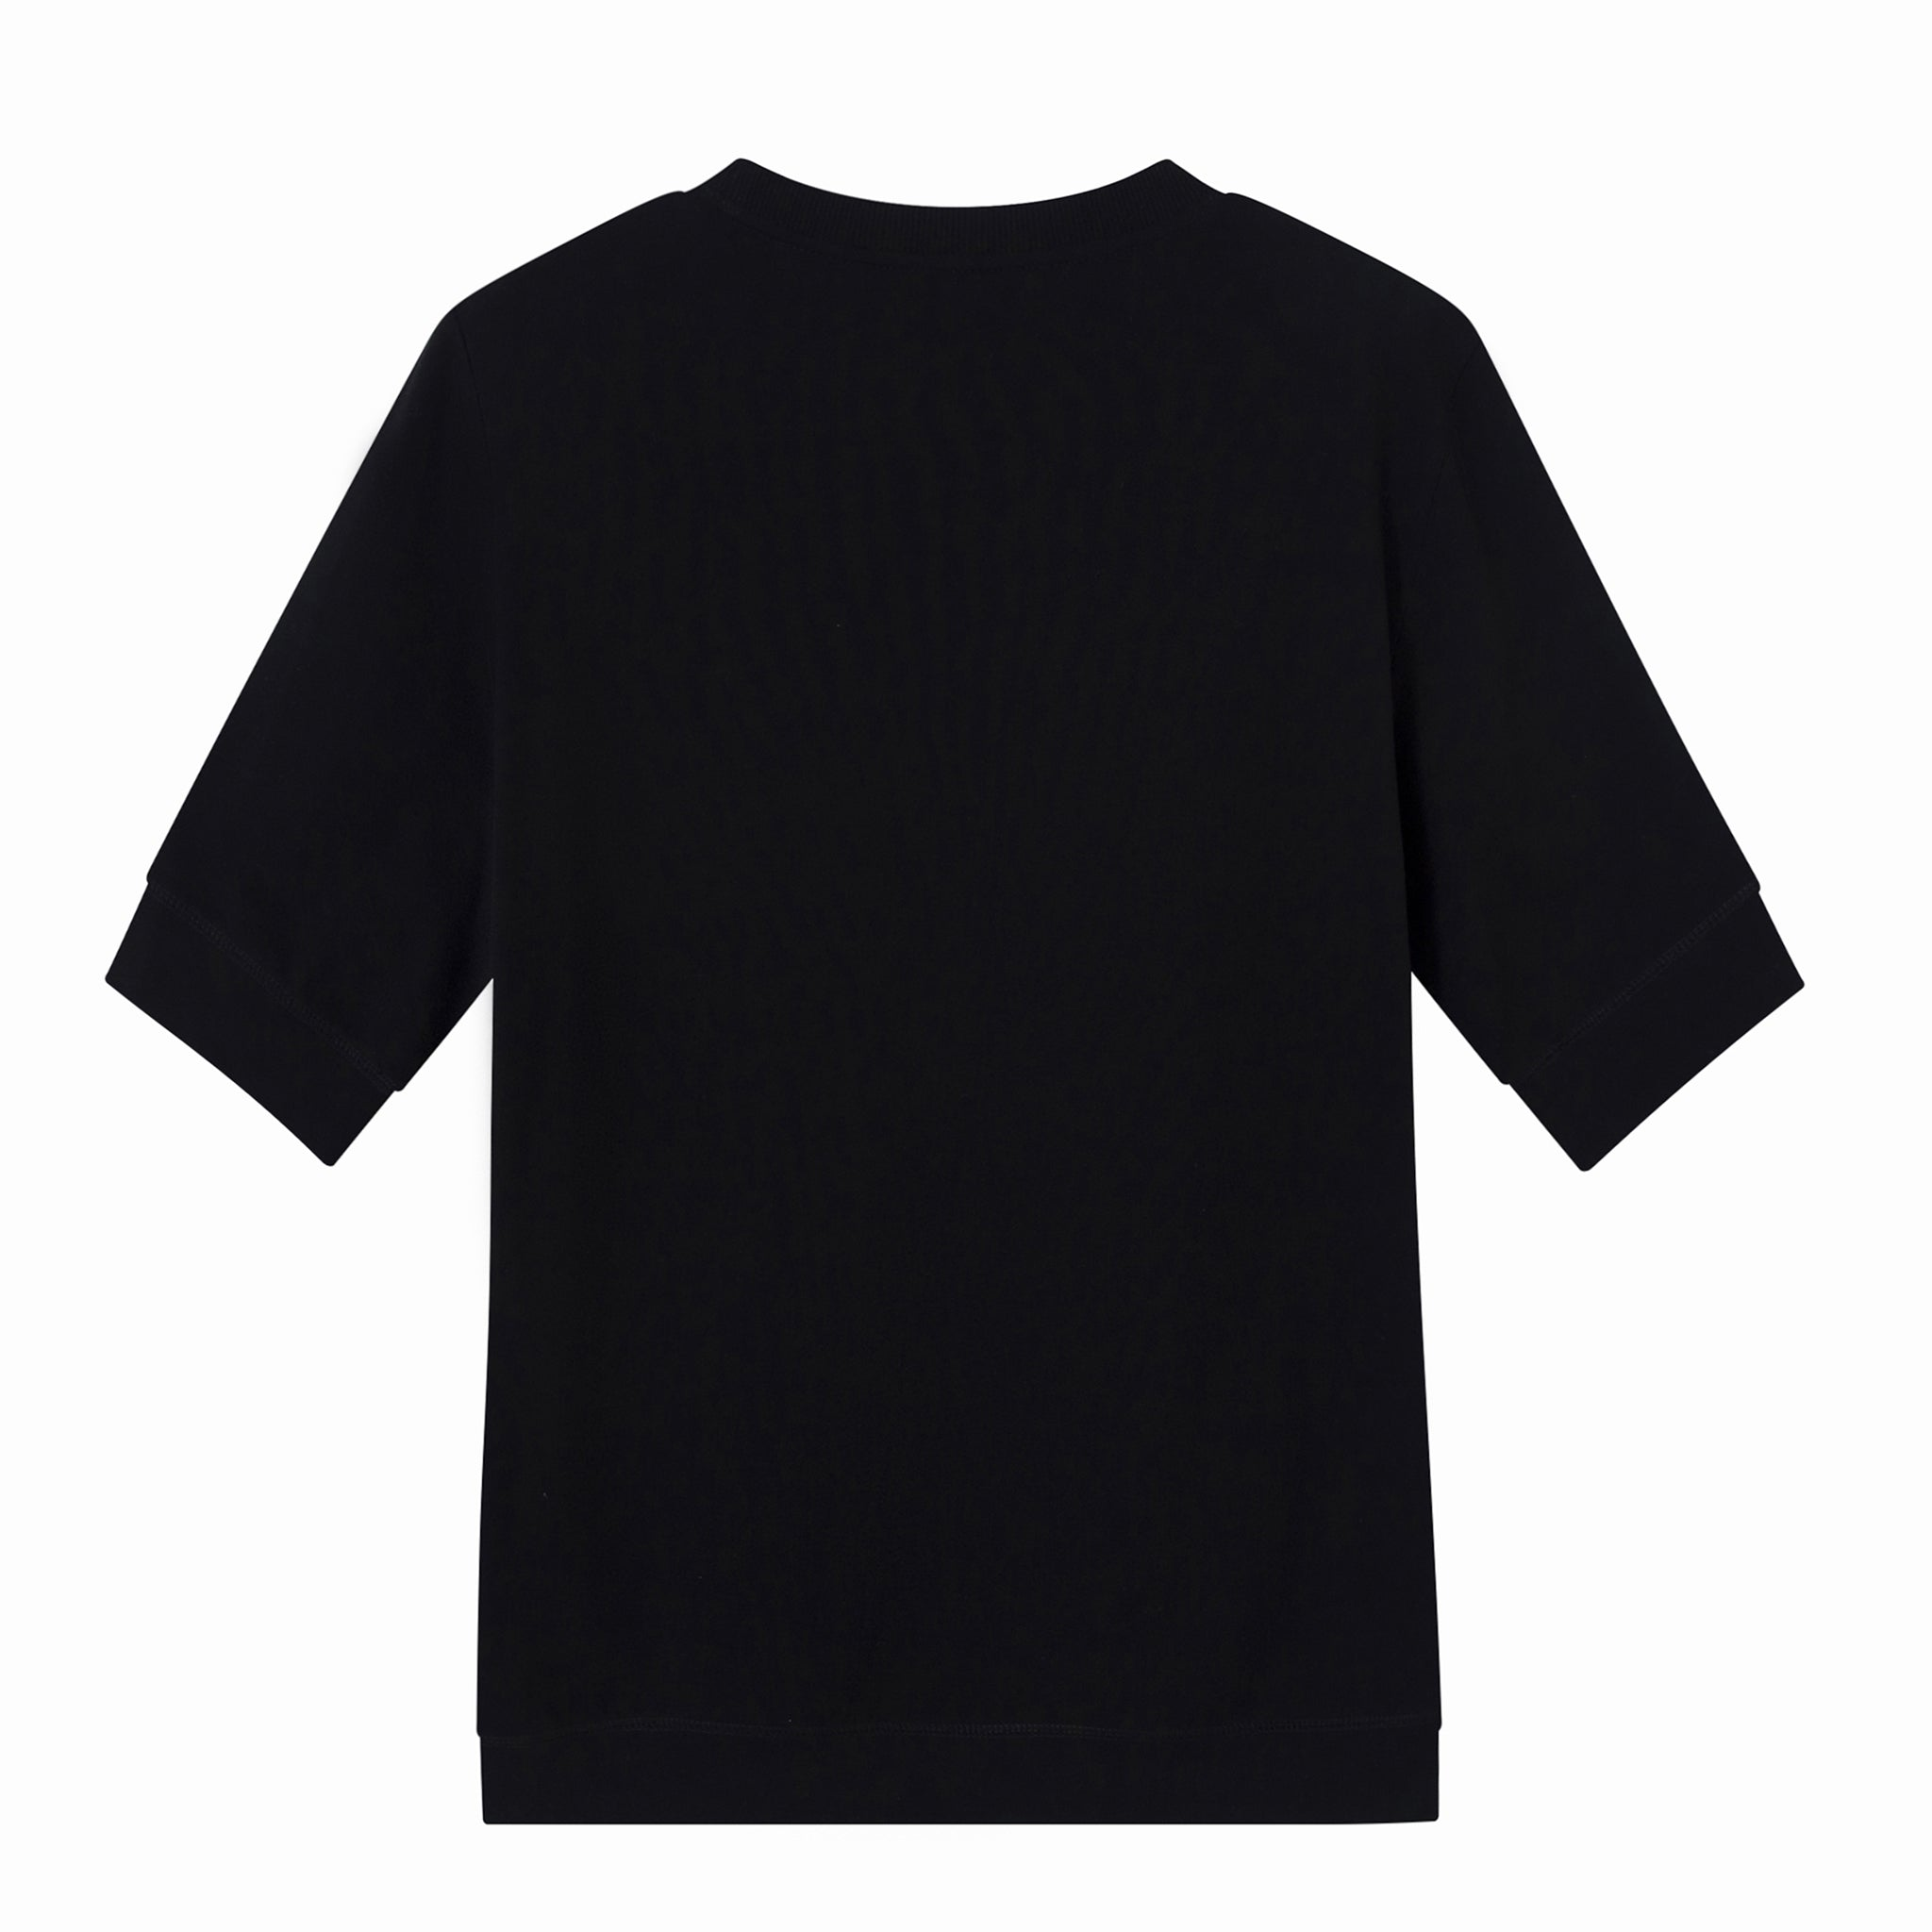 Load image into Gallery viewer, Demon/Chapai half sleeve sweatshirt - Black